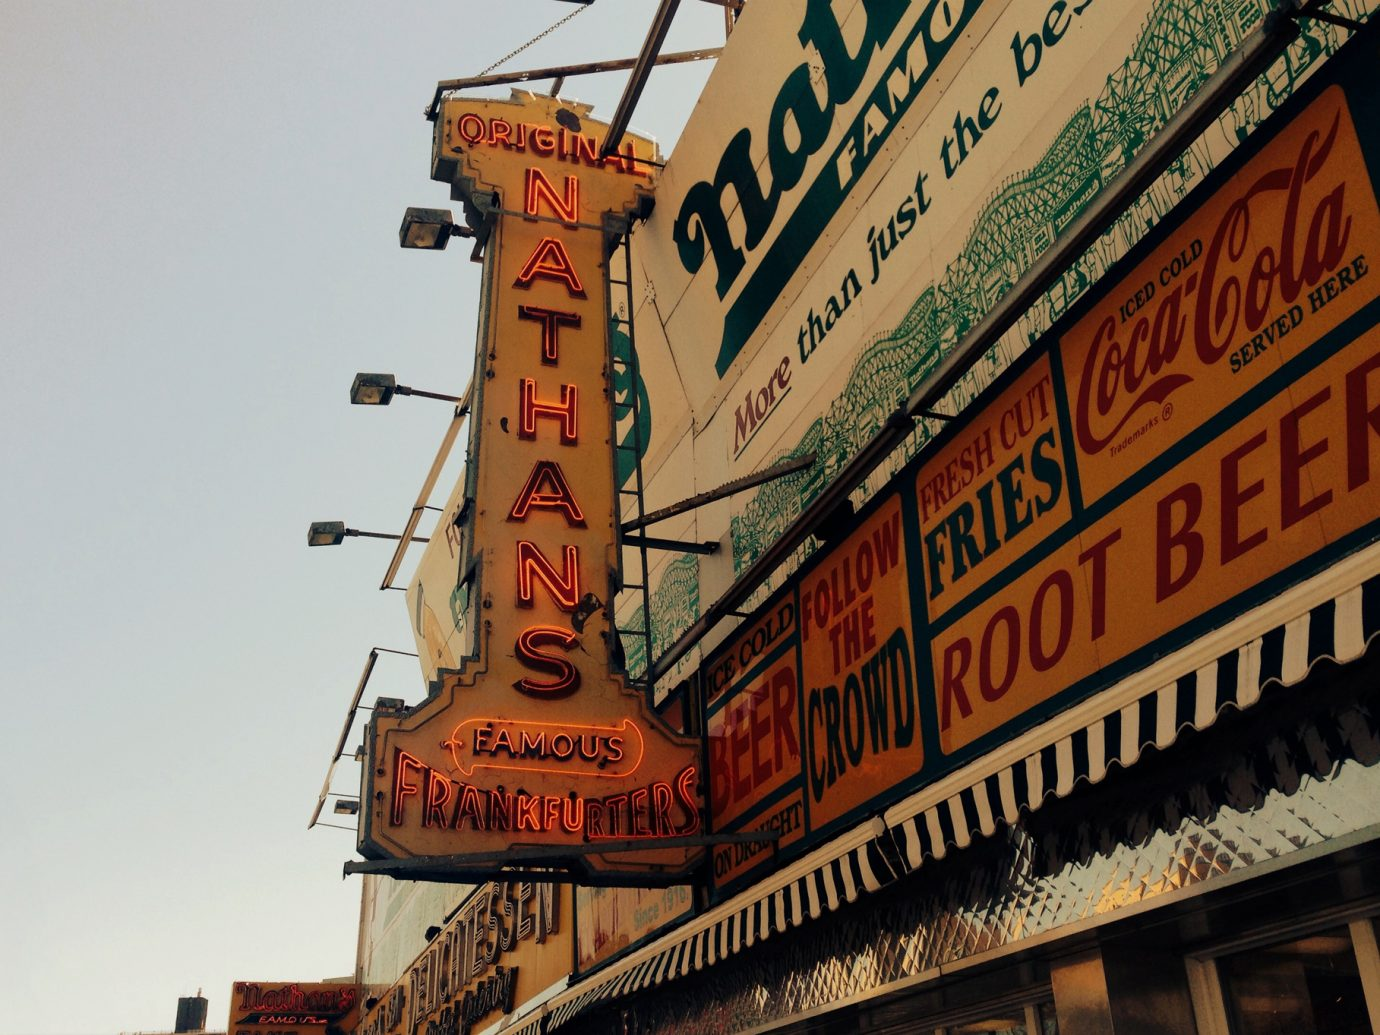 exterior of Nathan's on Coney Island